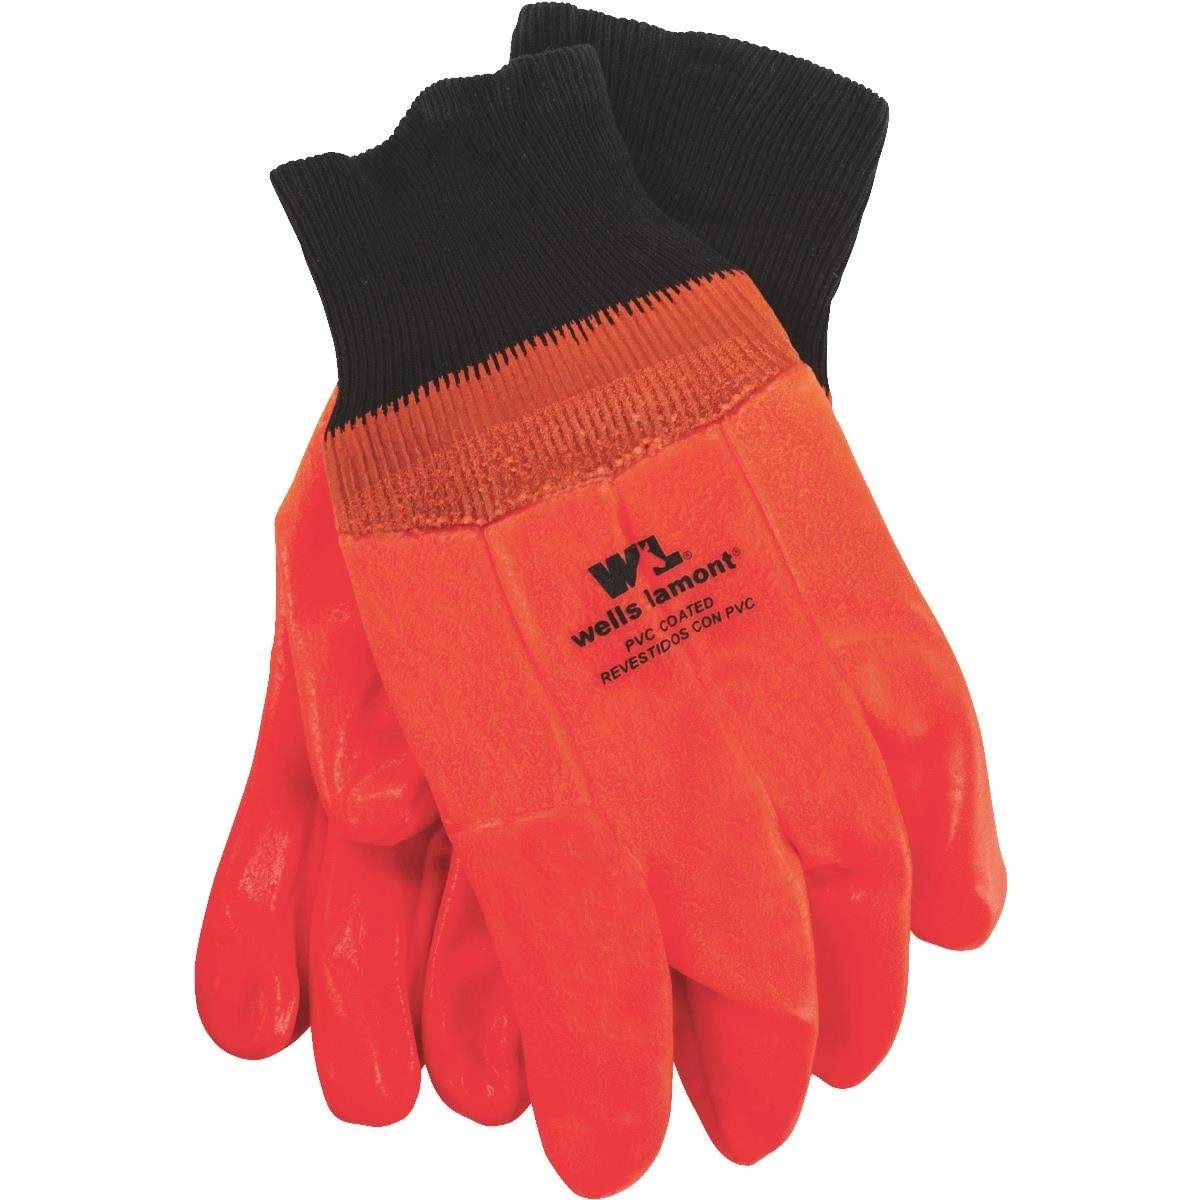 Wells Lamont PVC Insulated Gloves - Orange, 164 Pairs